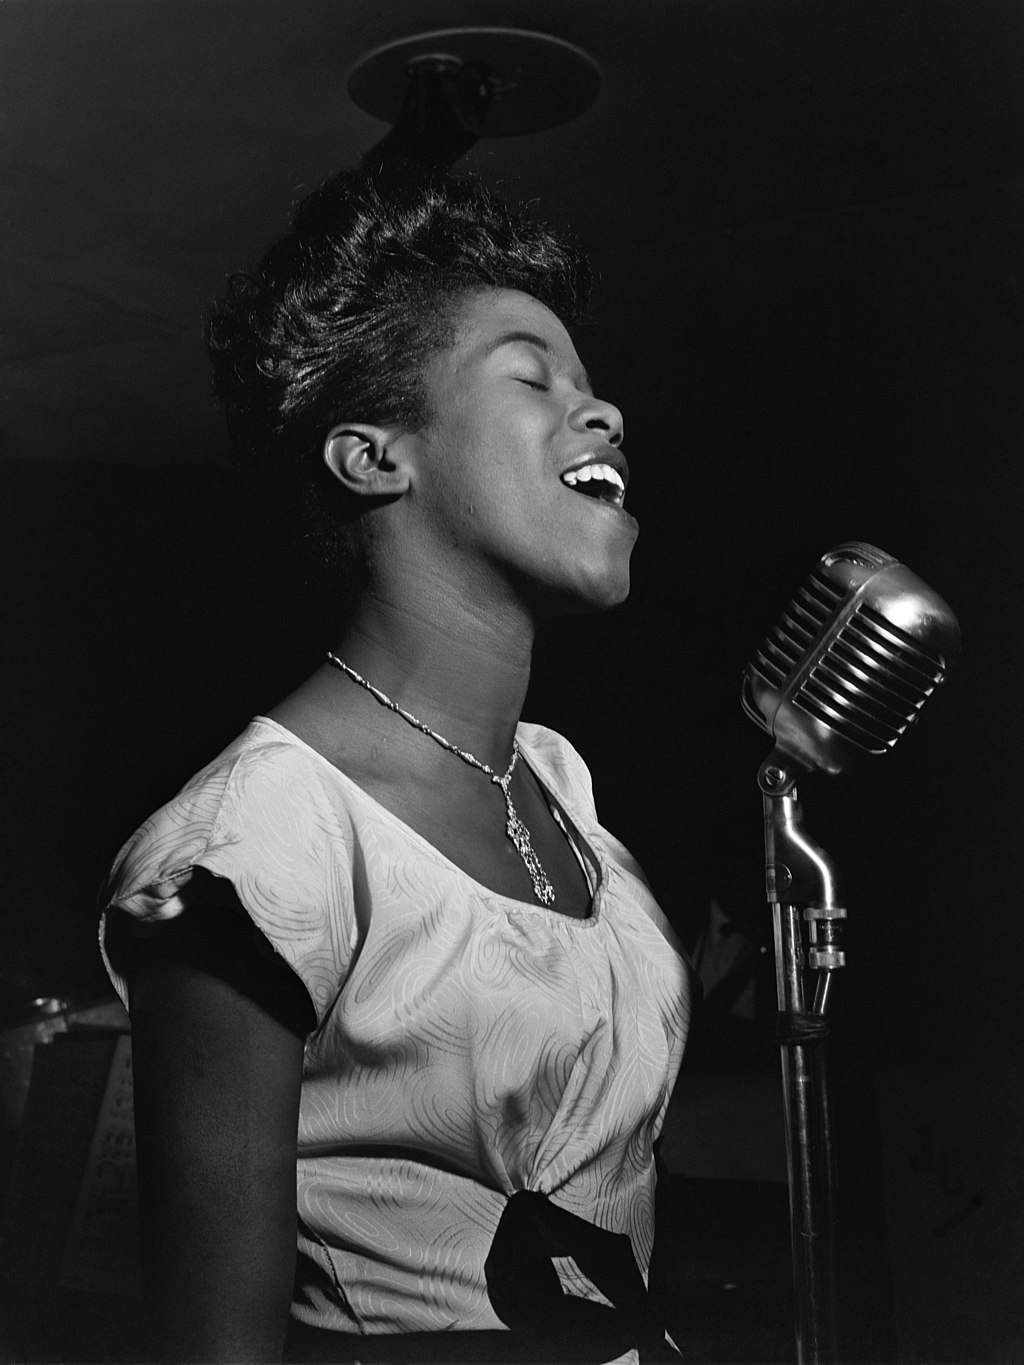 https://upload.wikimedia.org/wikipedia/commons/thumb/9/92/Sarah_Vaughan_-_William_P._Gottlieb_-_No._1.jpg/1024px-Sarah_Vaughan_-_William_P._Gottlieb_-_No._1.jpg